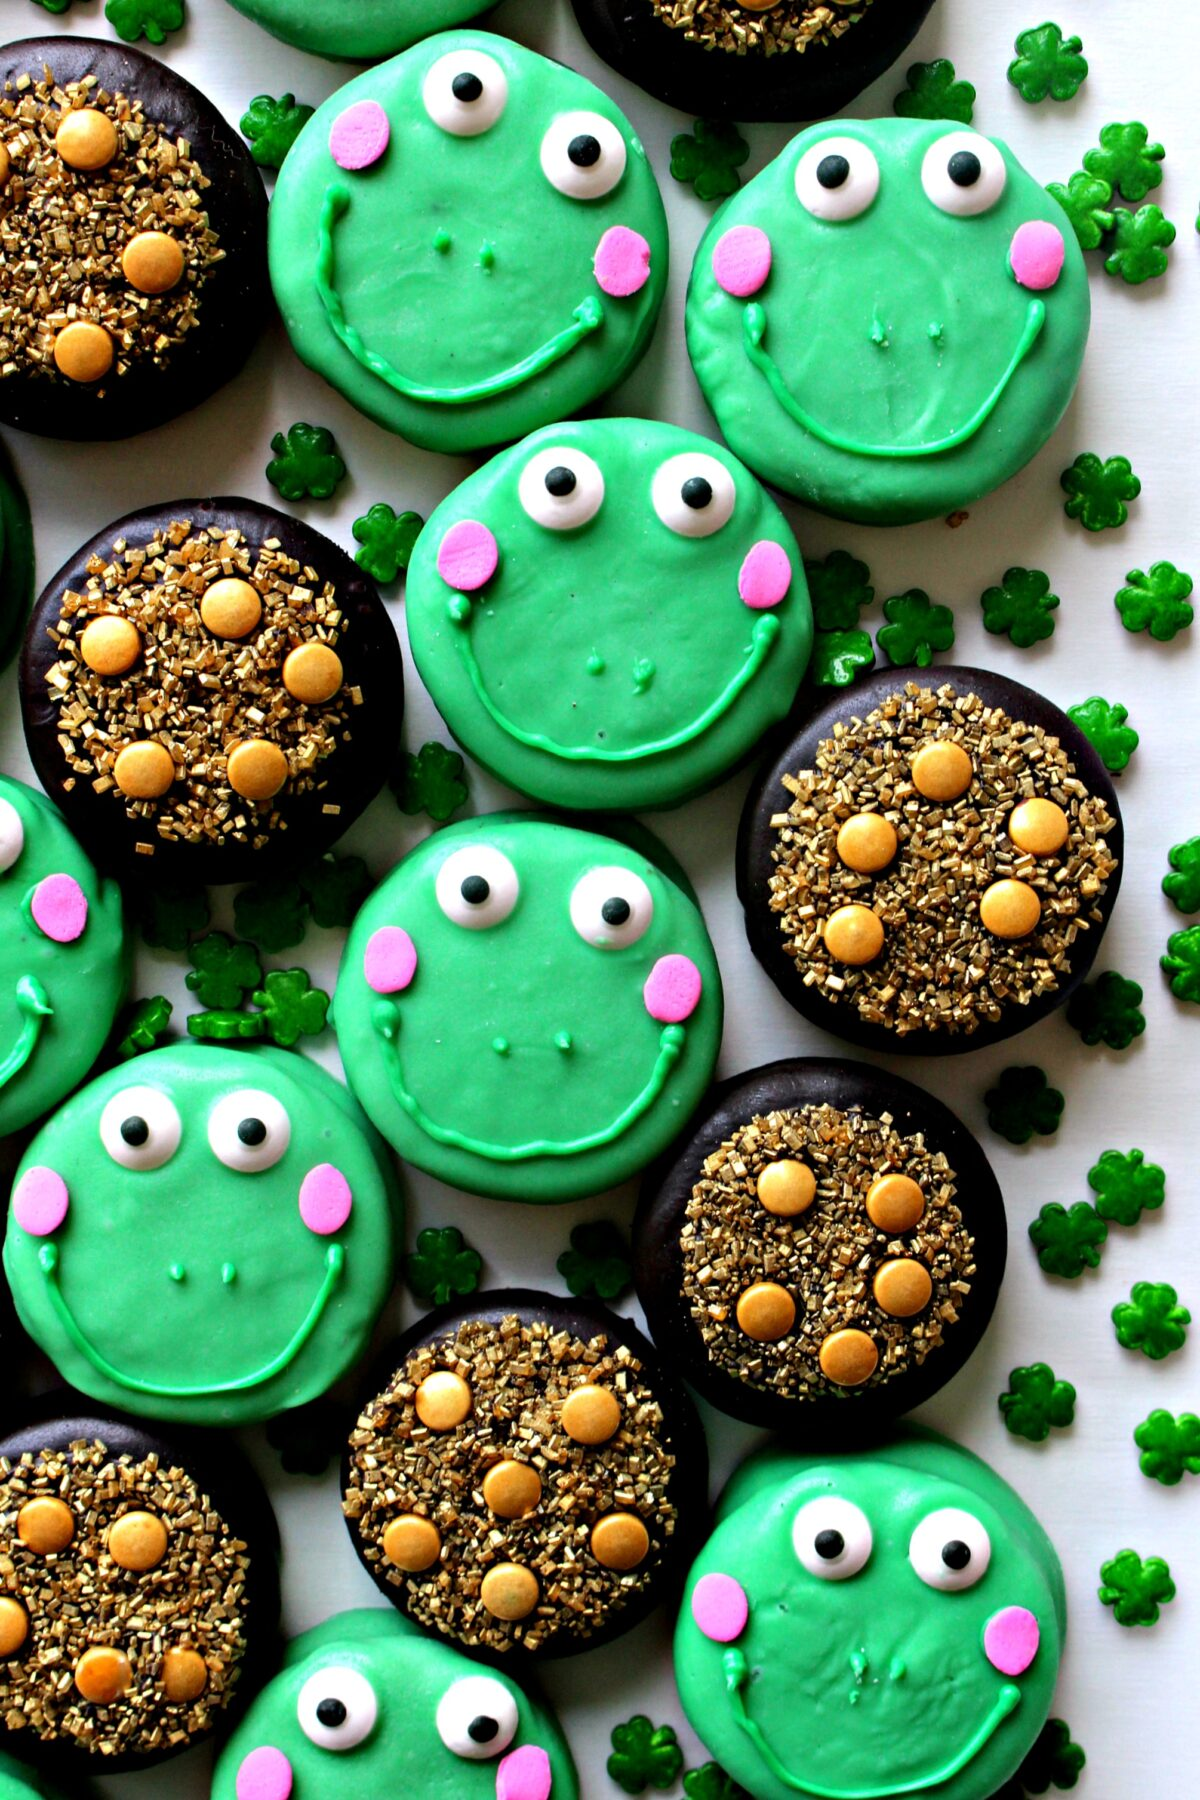 Frog and pots of gold decorated cookies.